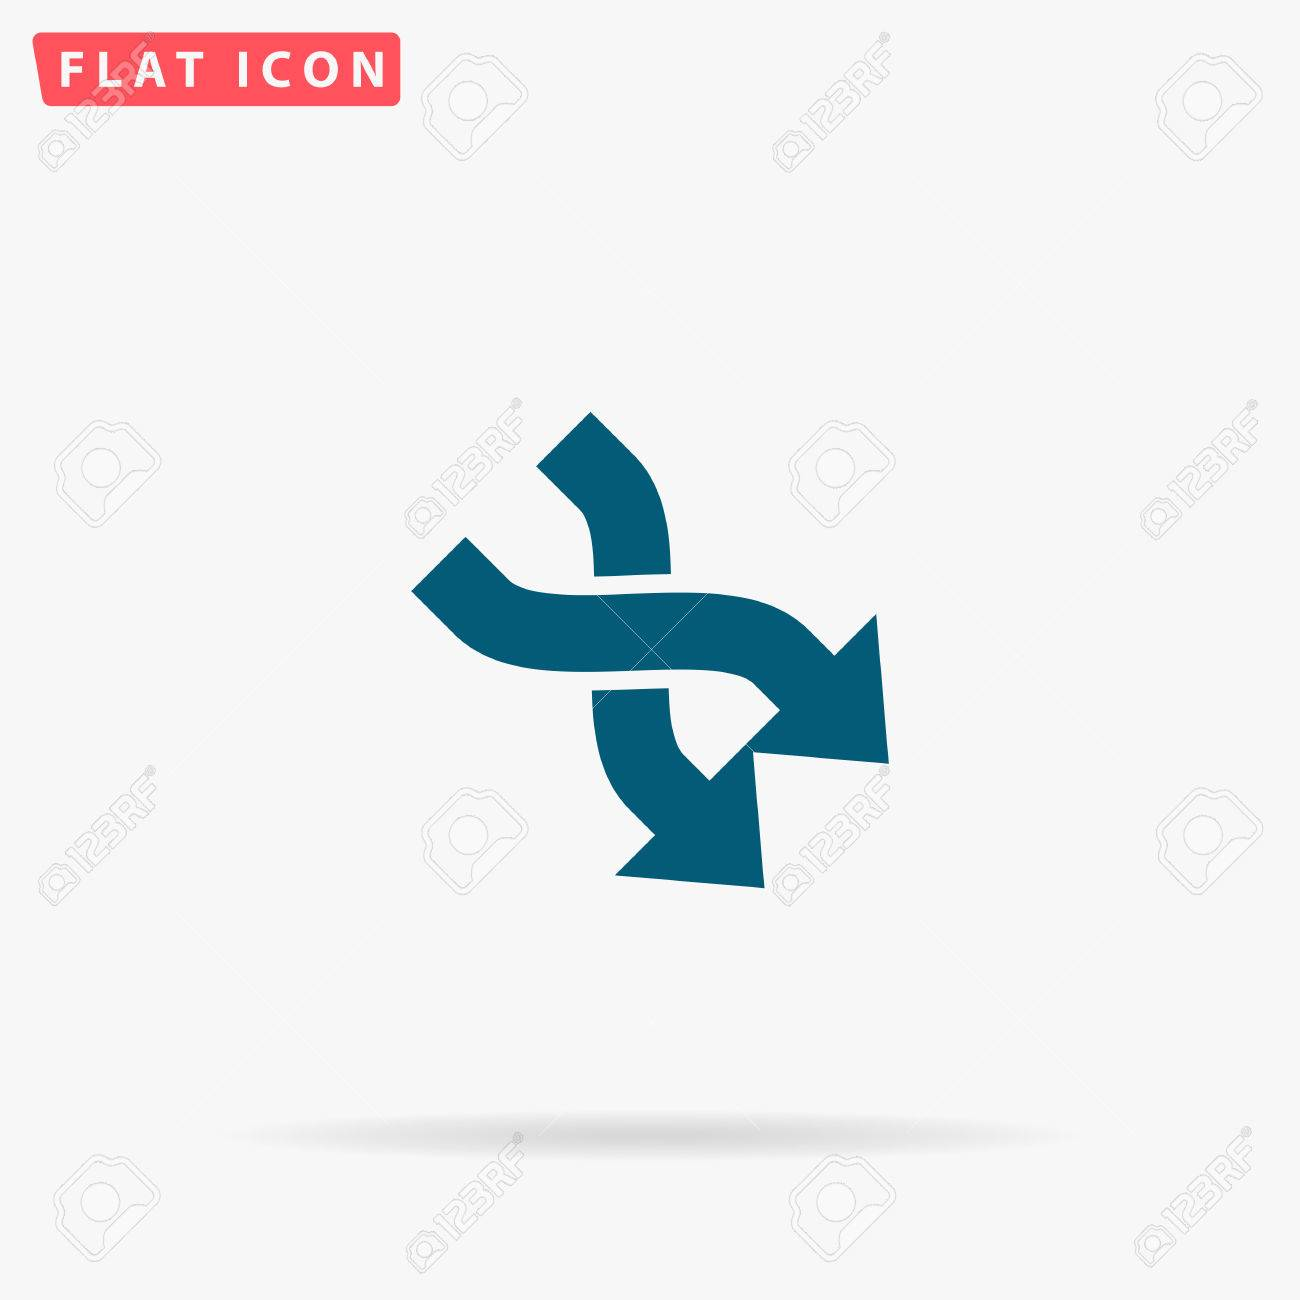 2 Side Arrow Icon Vector Flat Simple Blue Pictogram On White